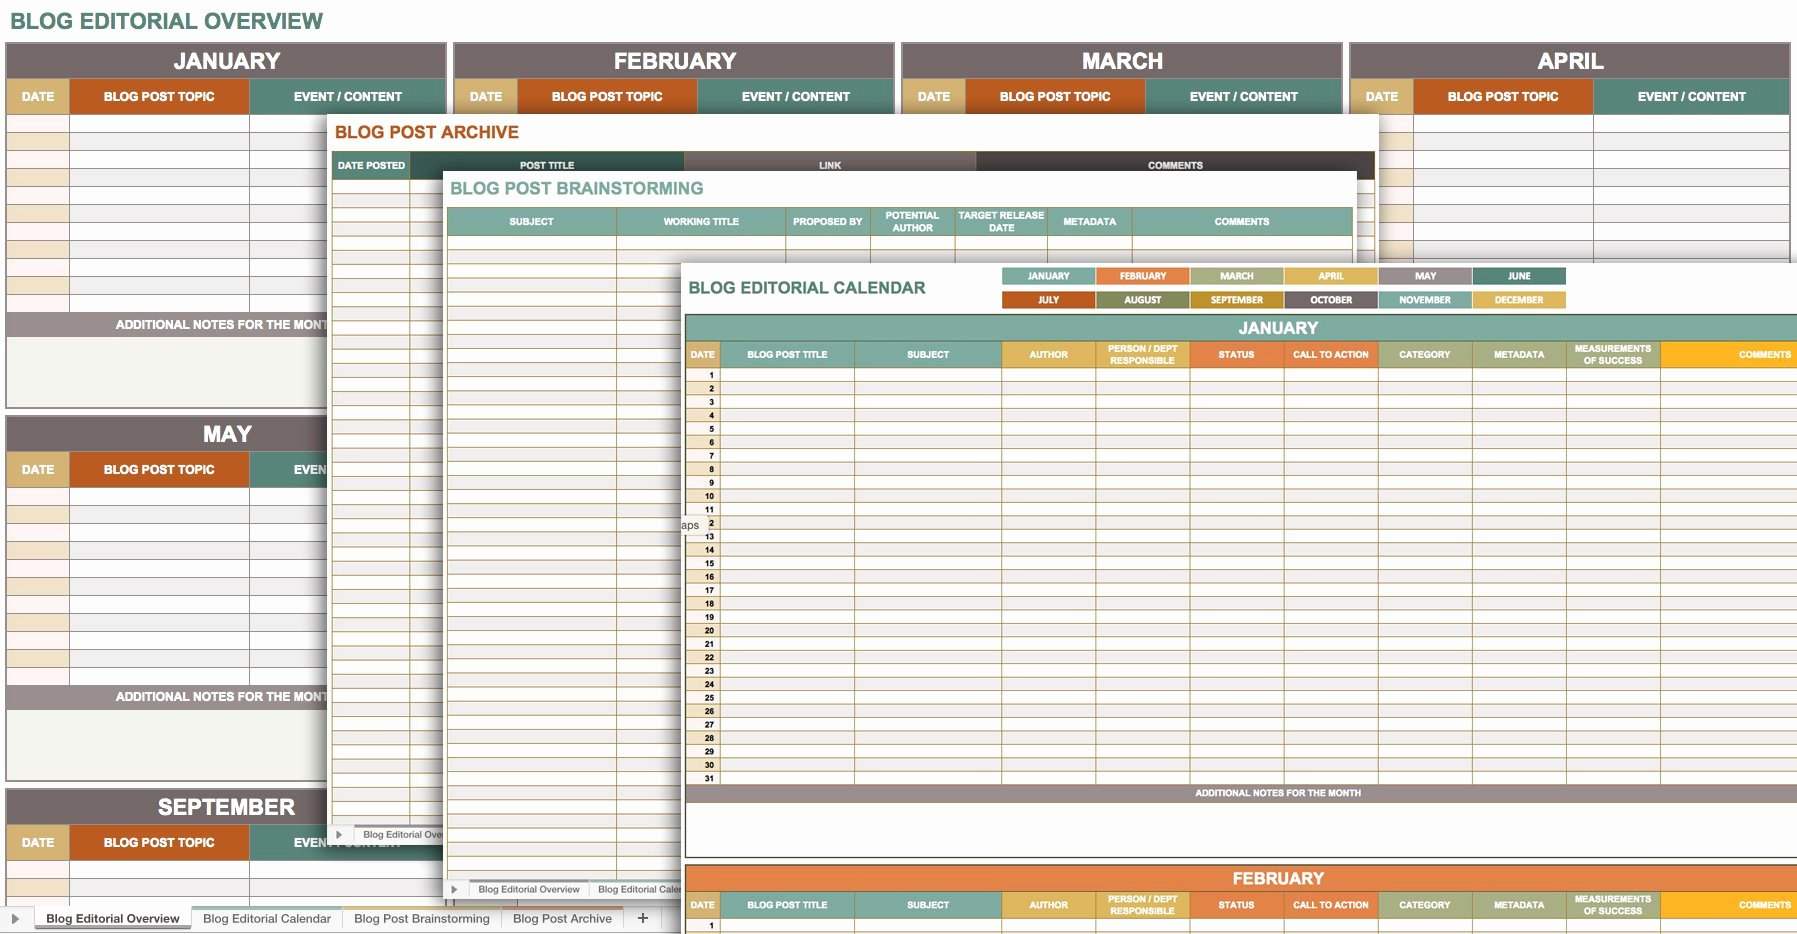 Excel Calendar Schedule Template New Free Marketing Plan Templates for Excel Smartsheet